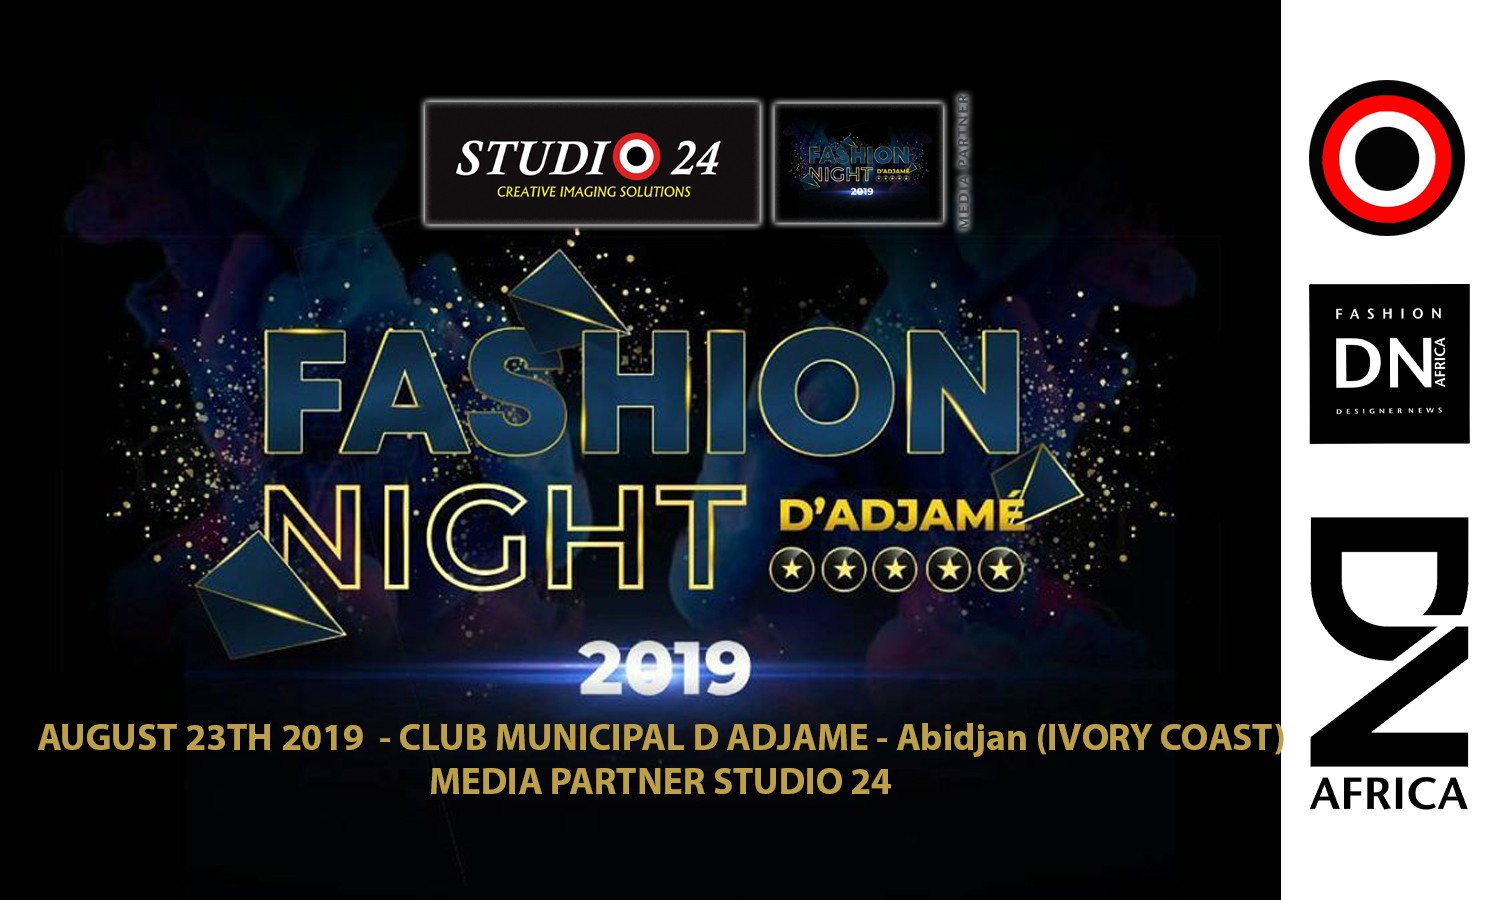 AFRICAN FASHION STYLE MAGAZINE - Fashion Night d'Adjamé 2019 - 5th EDITION by SOULEY DESIGN - Photographer DAN NGU - Official Media Partner DN AFRICA - STUDIO 24 NIGERIA - STUDIO 24 INTERNATIONAL - Ifeanyi Christopher Oputa MD AND CEO OF COLVI LIMITED AND STUDIO 24 - CHEVEUX CHERIE and CHEVEUX CHERIE STUDIO BY MARIEME DUBOZ- Fashion Editor Nahomie NOOR COULIBALY